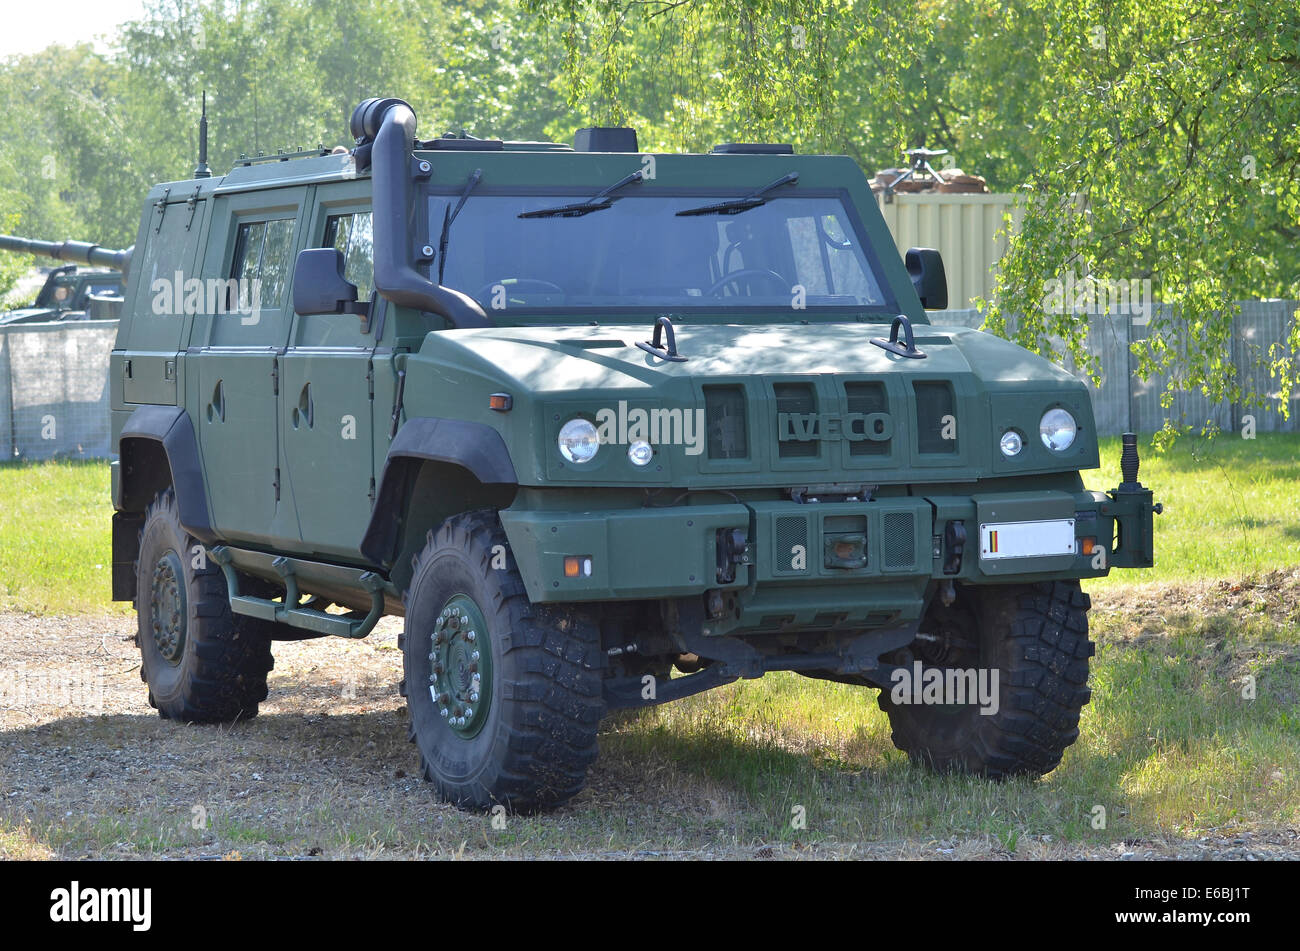 Iveco 4x4 Stock Photos & Iveco 4x4 Stock Images - Alamy